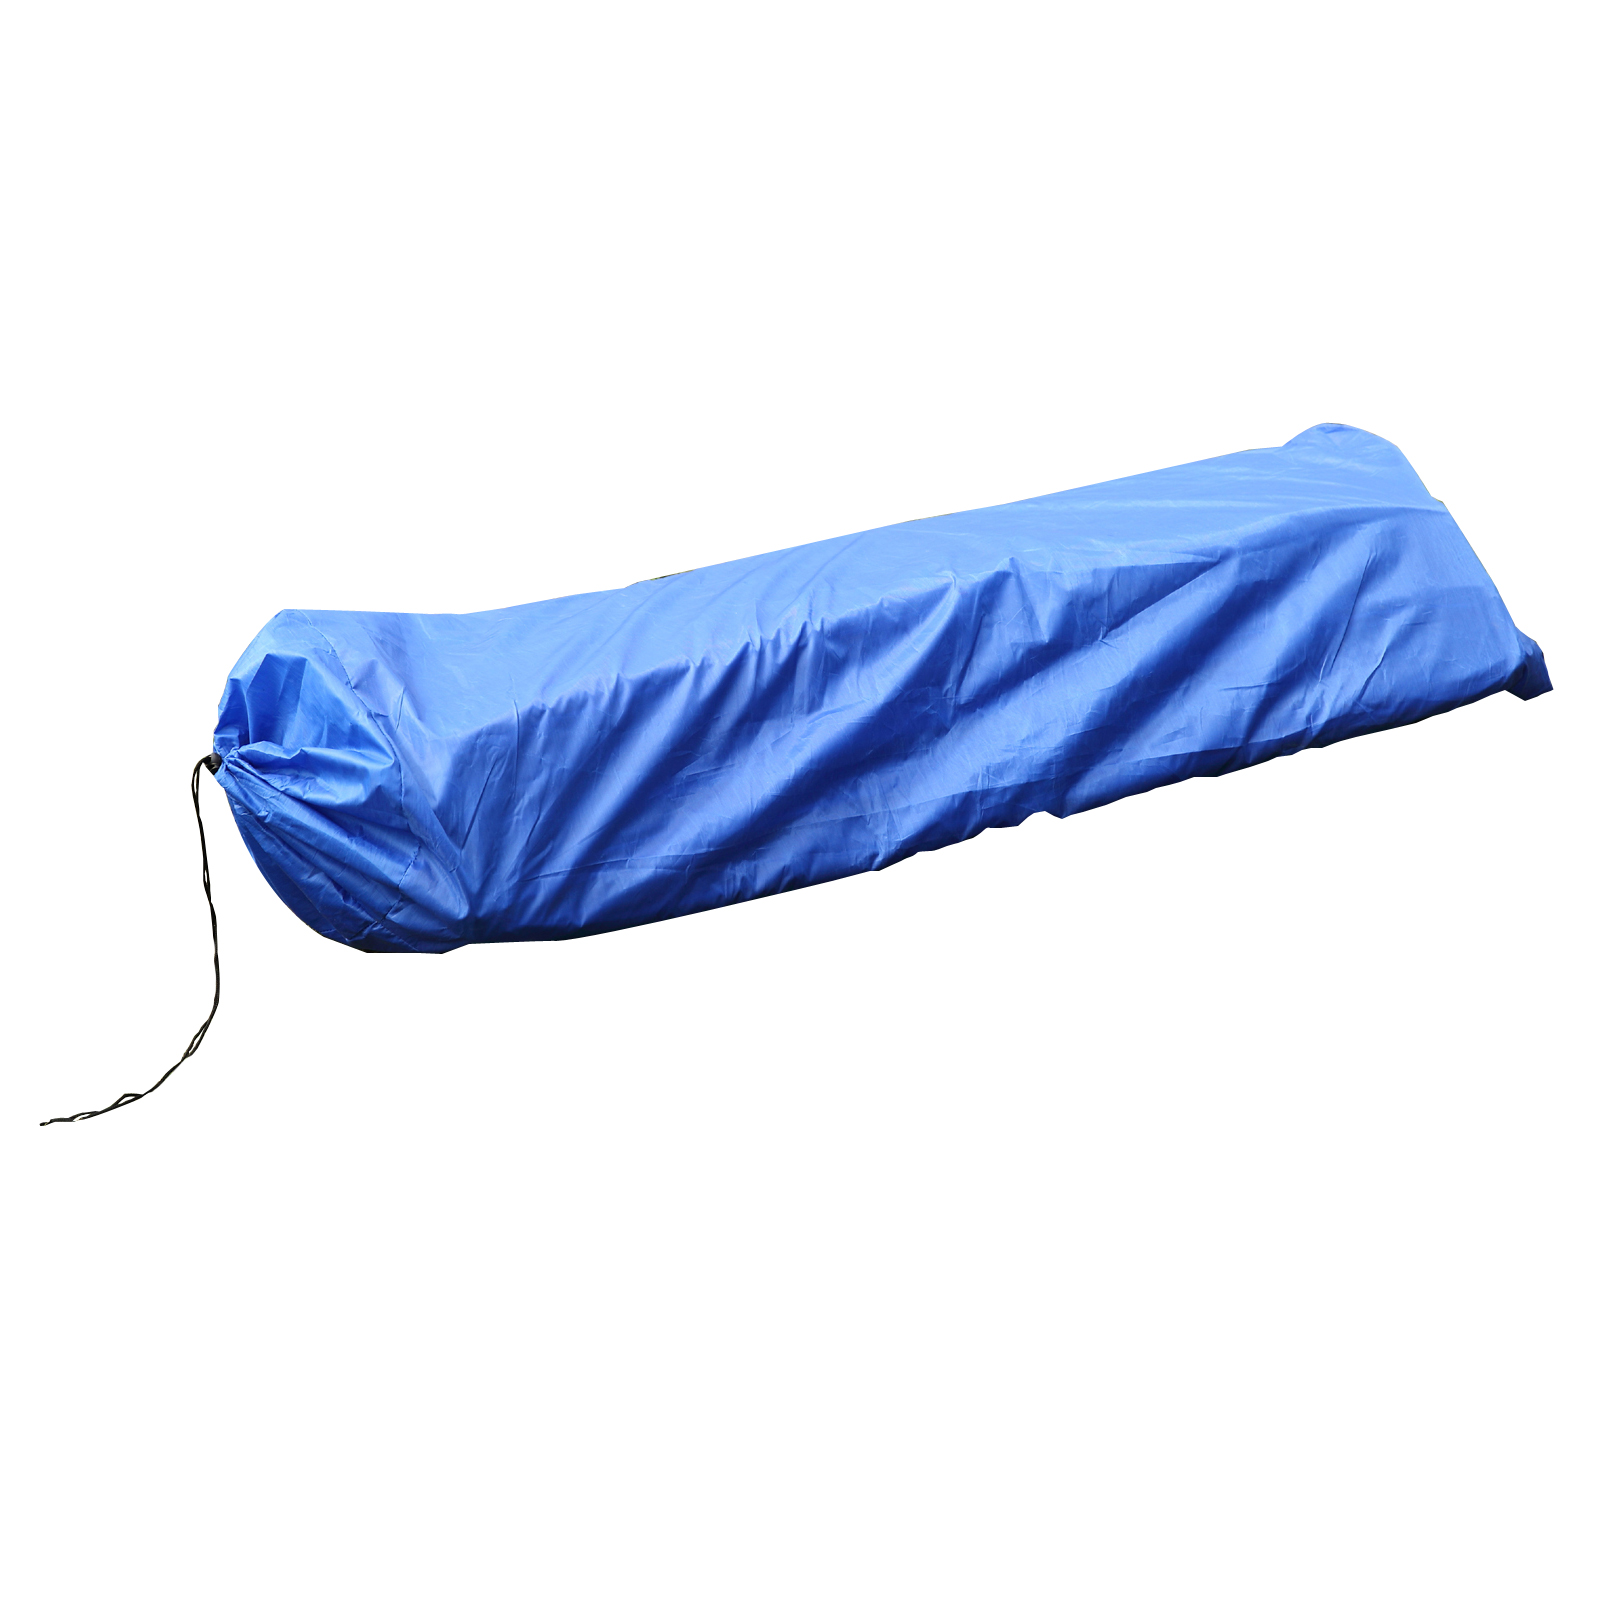 Safety Round Frame Blue Pad Spring Pad Replacement Cover: 15FT Blue Trampoline Safety Pad Spring Round Frame Pad